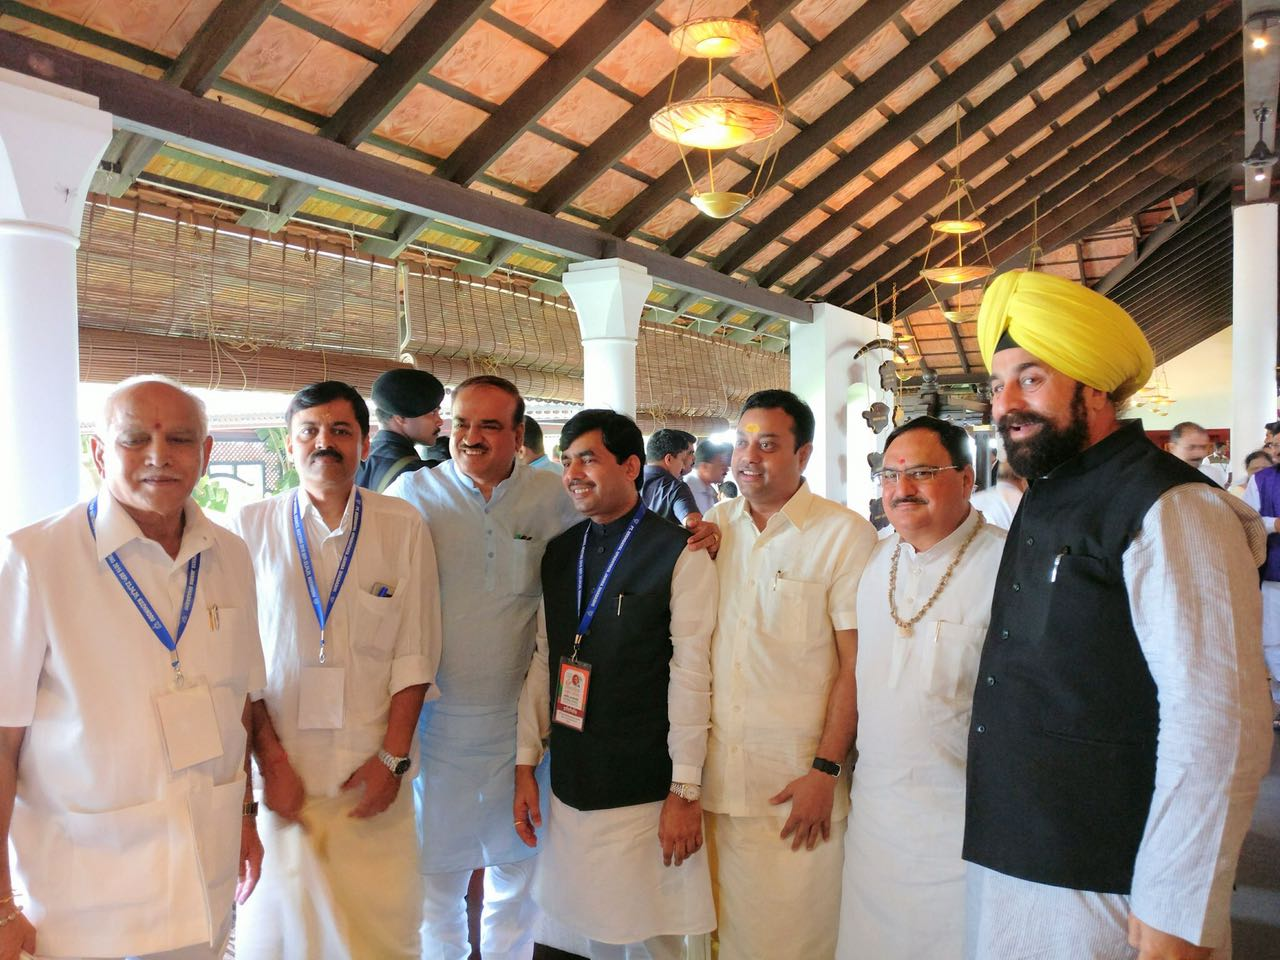 BSY At calicut's BJP National Executive Meeting with party colleagues